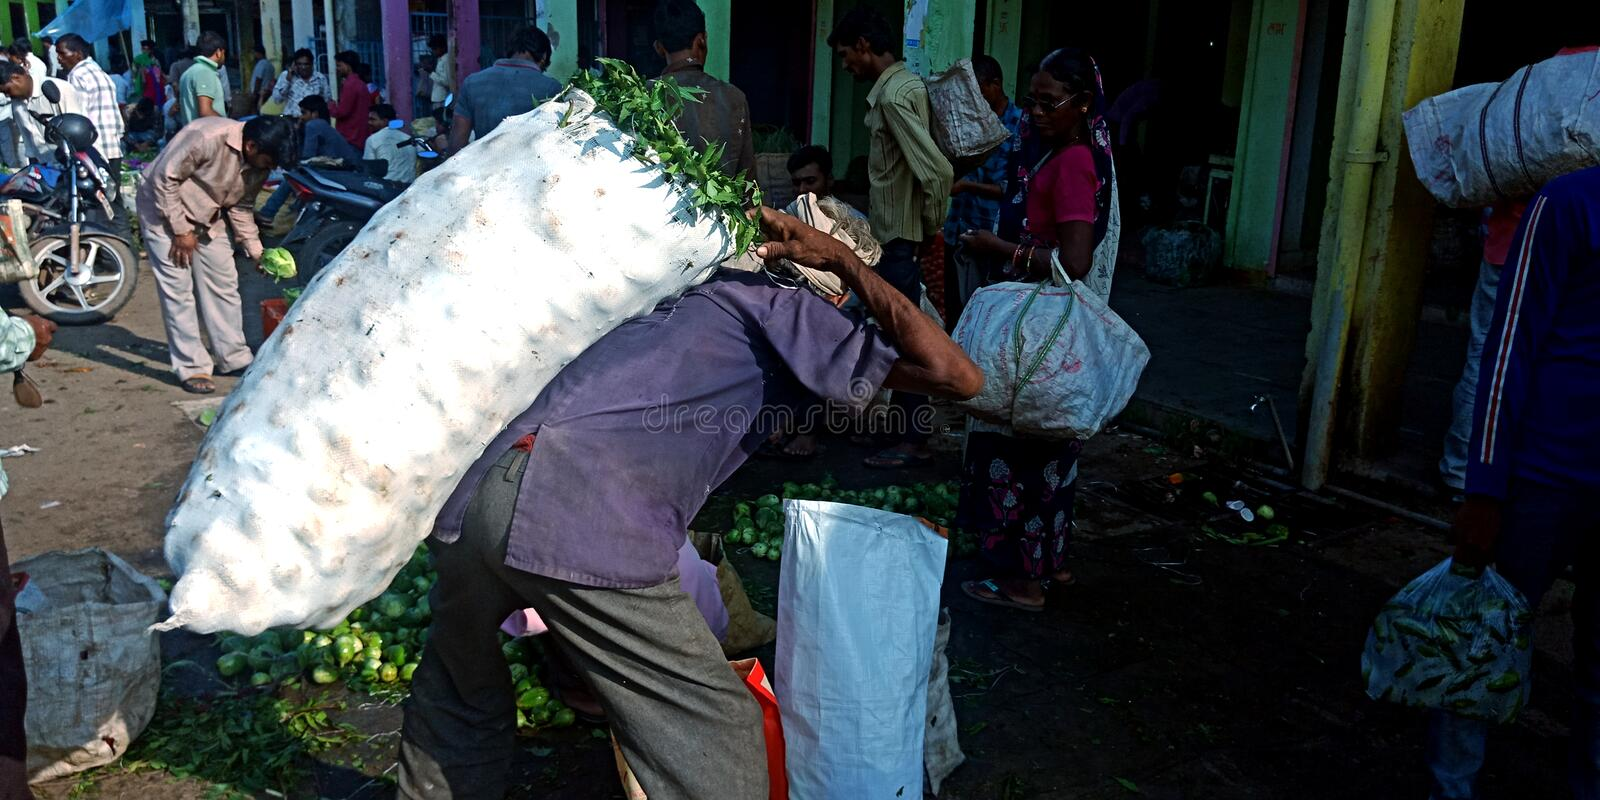 An Indian old man carried over vegetable sack at agriculture produce market stock photos